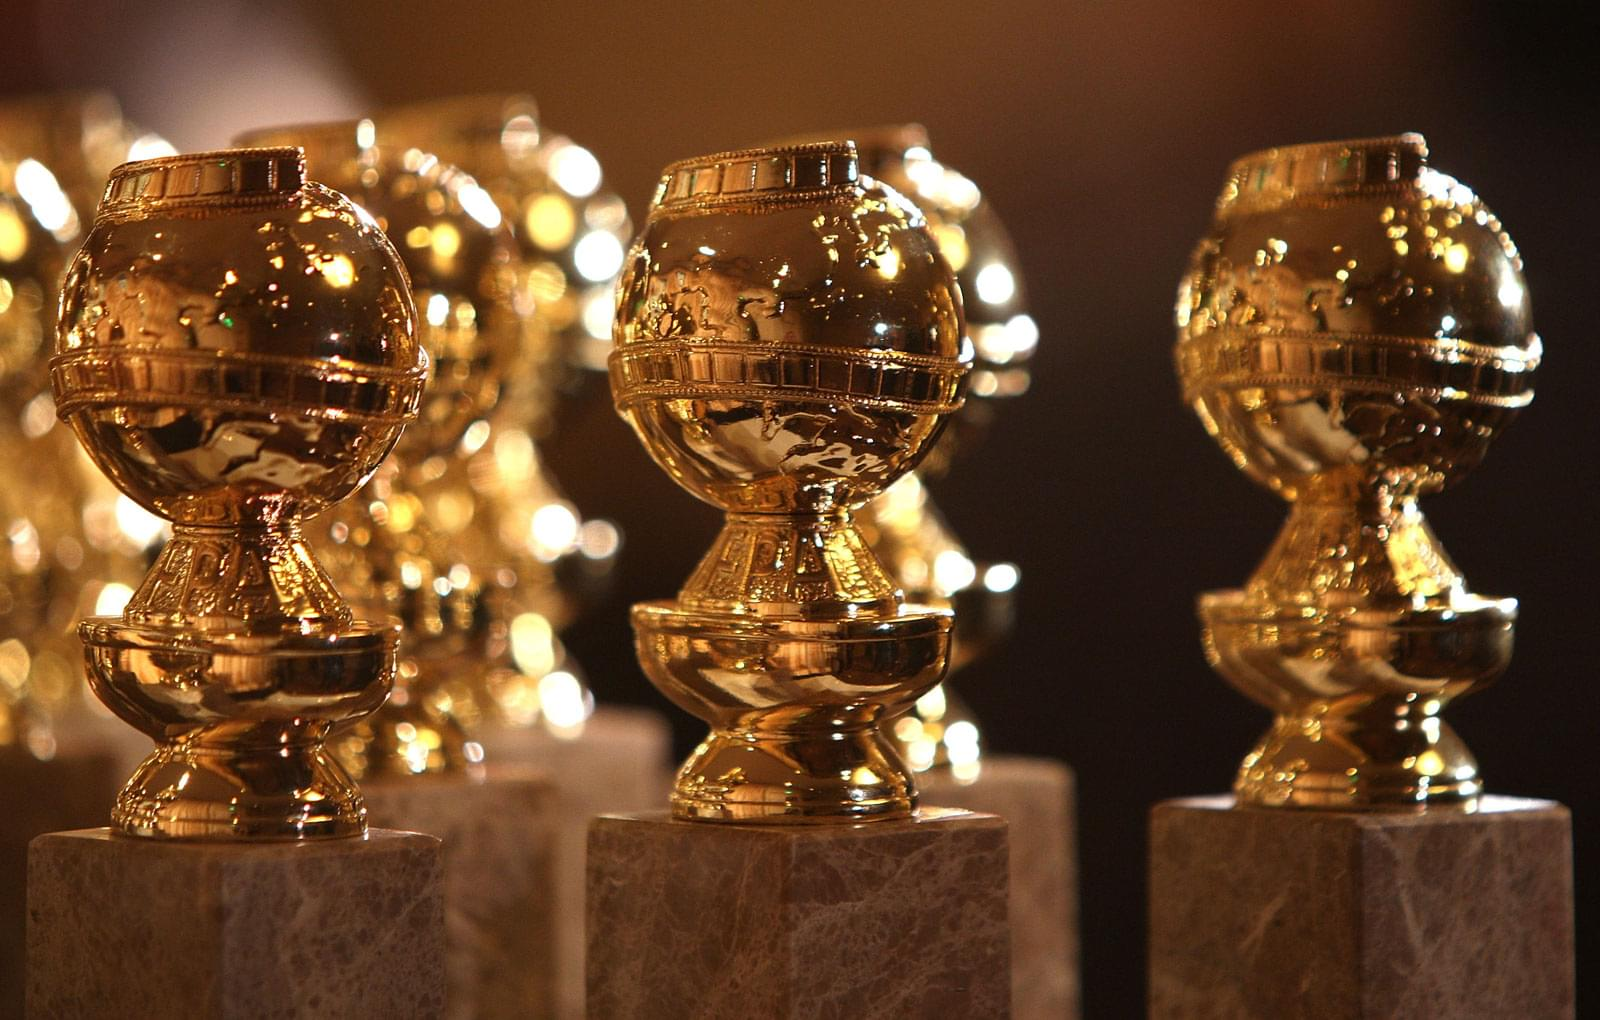 Golden Globes 2021Full list of Nominees and Winners